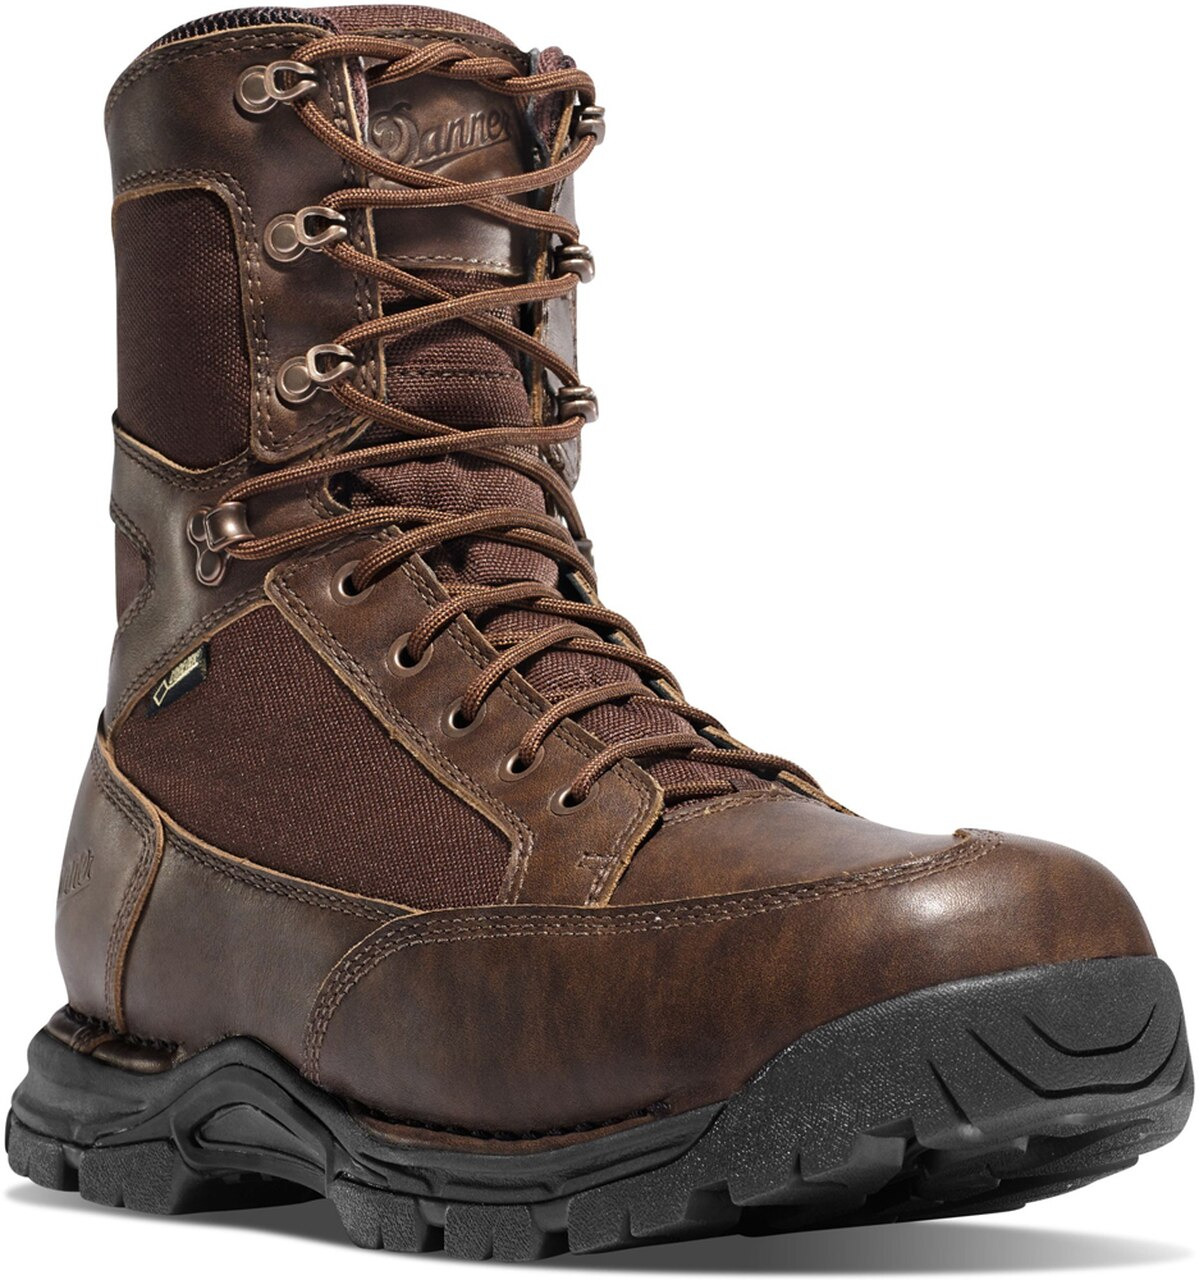 "Danner Pronghorn 8"" Gore-Tex Men's Waterproof Boots Ortholit"